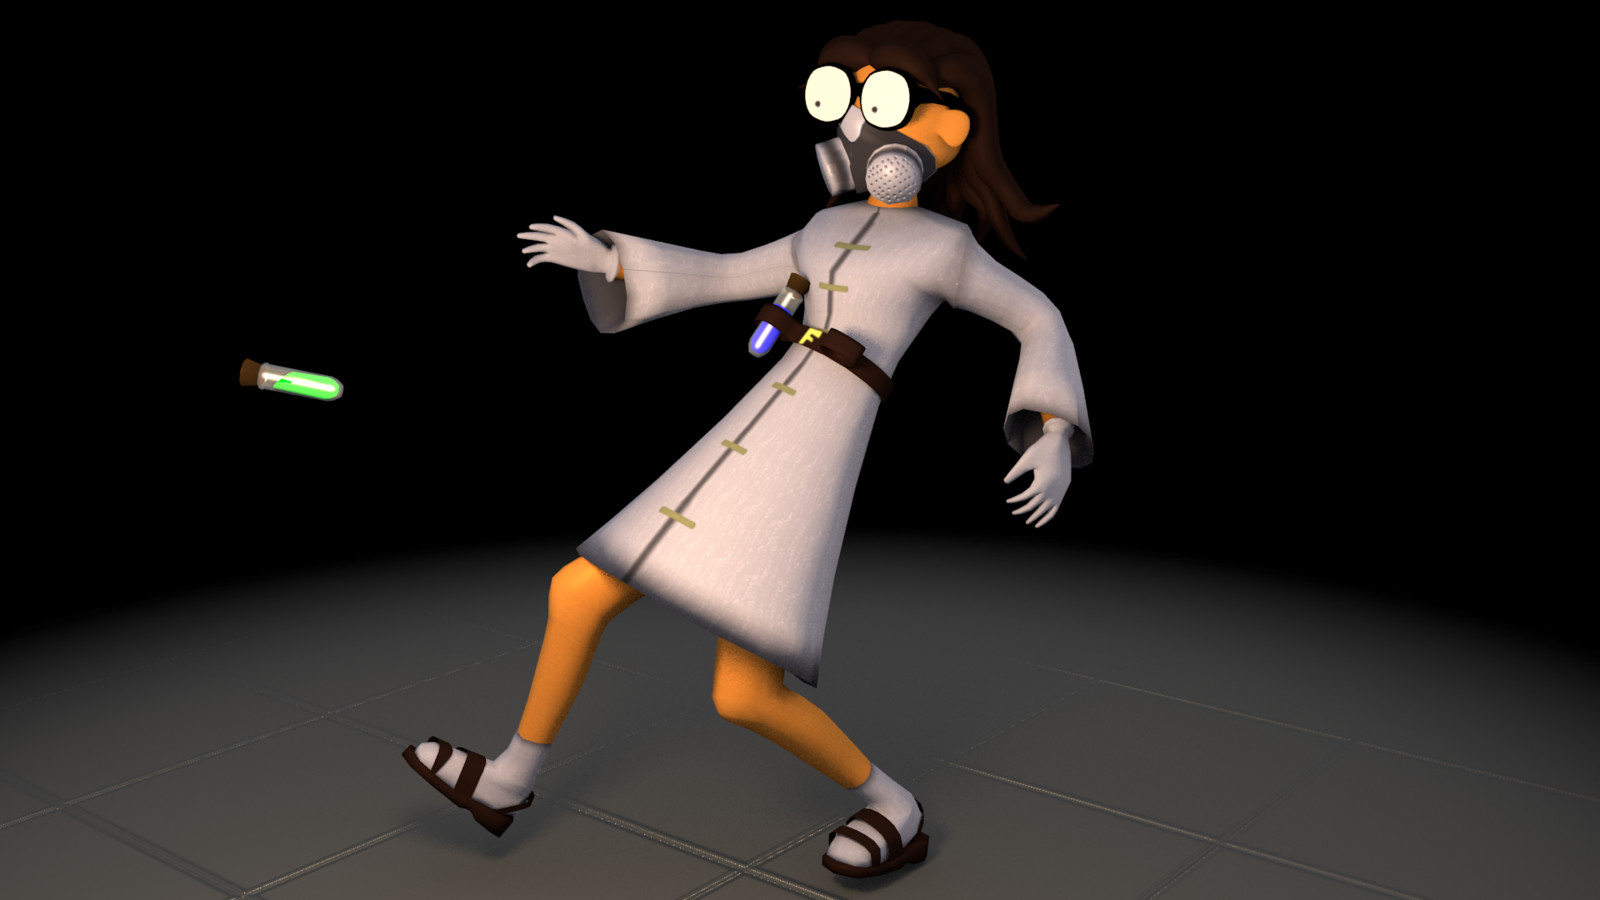 Dr Fusion dropping one of her vials. Could be toxic. She's not sure, but there's a risk.